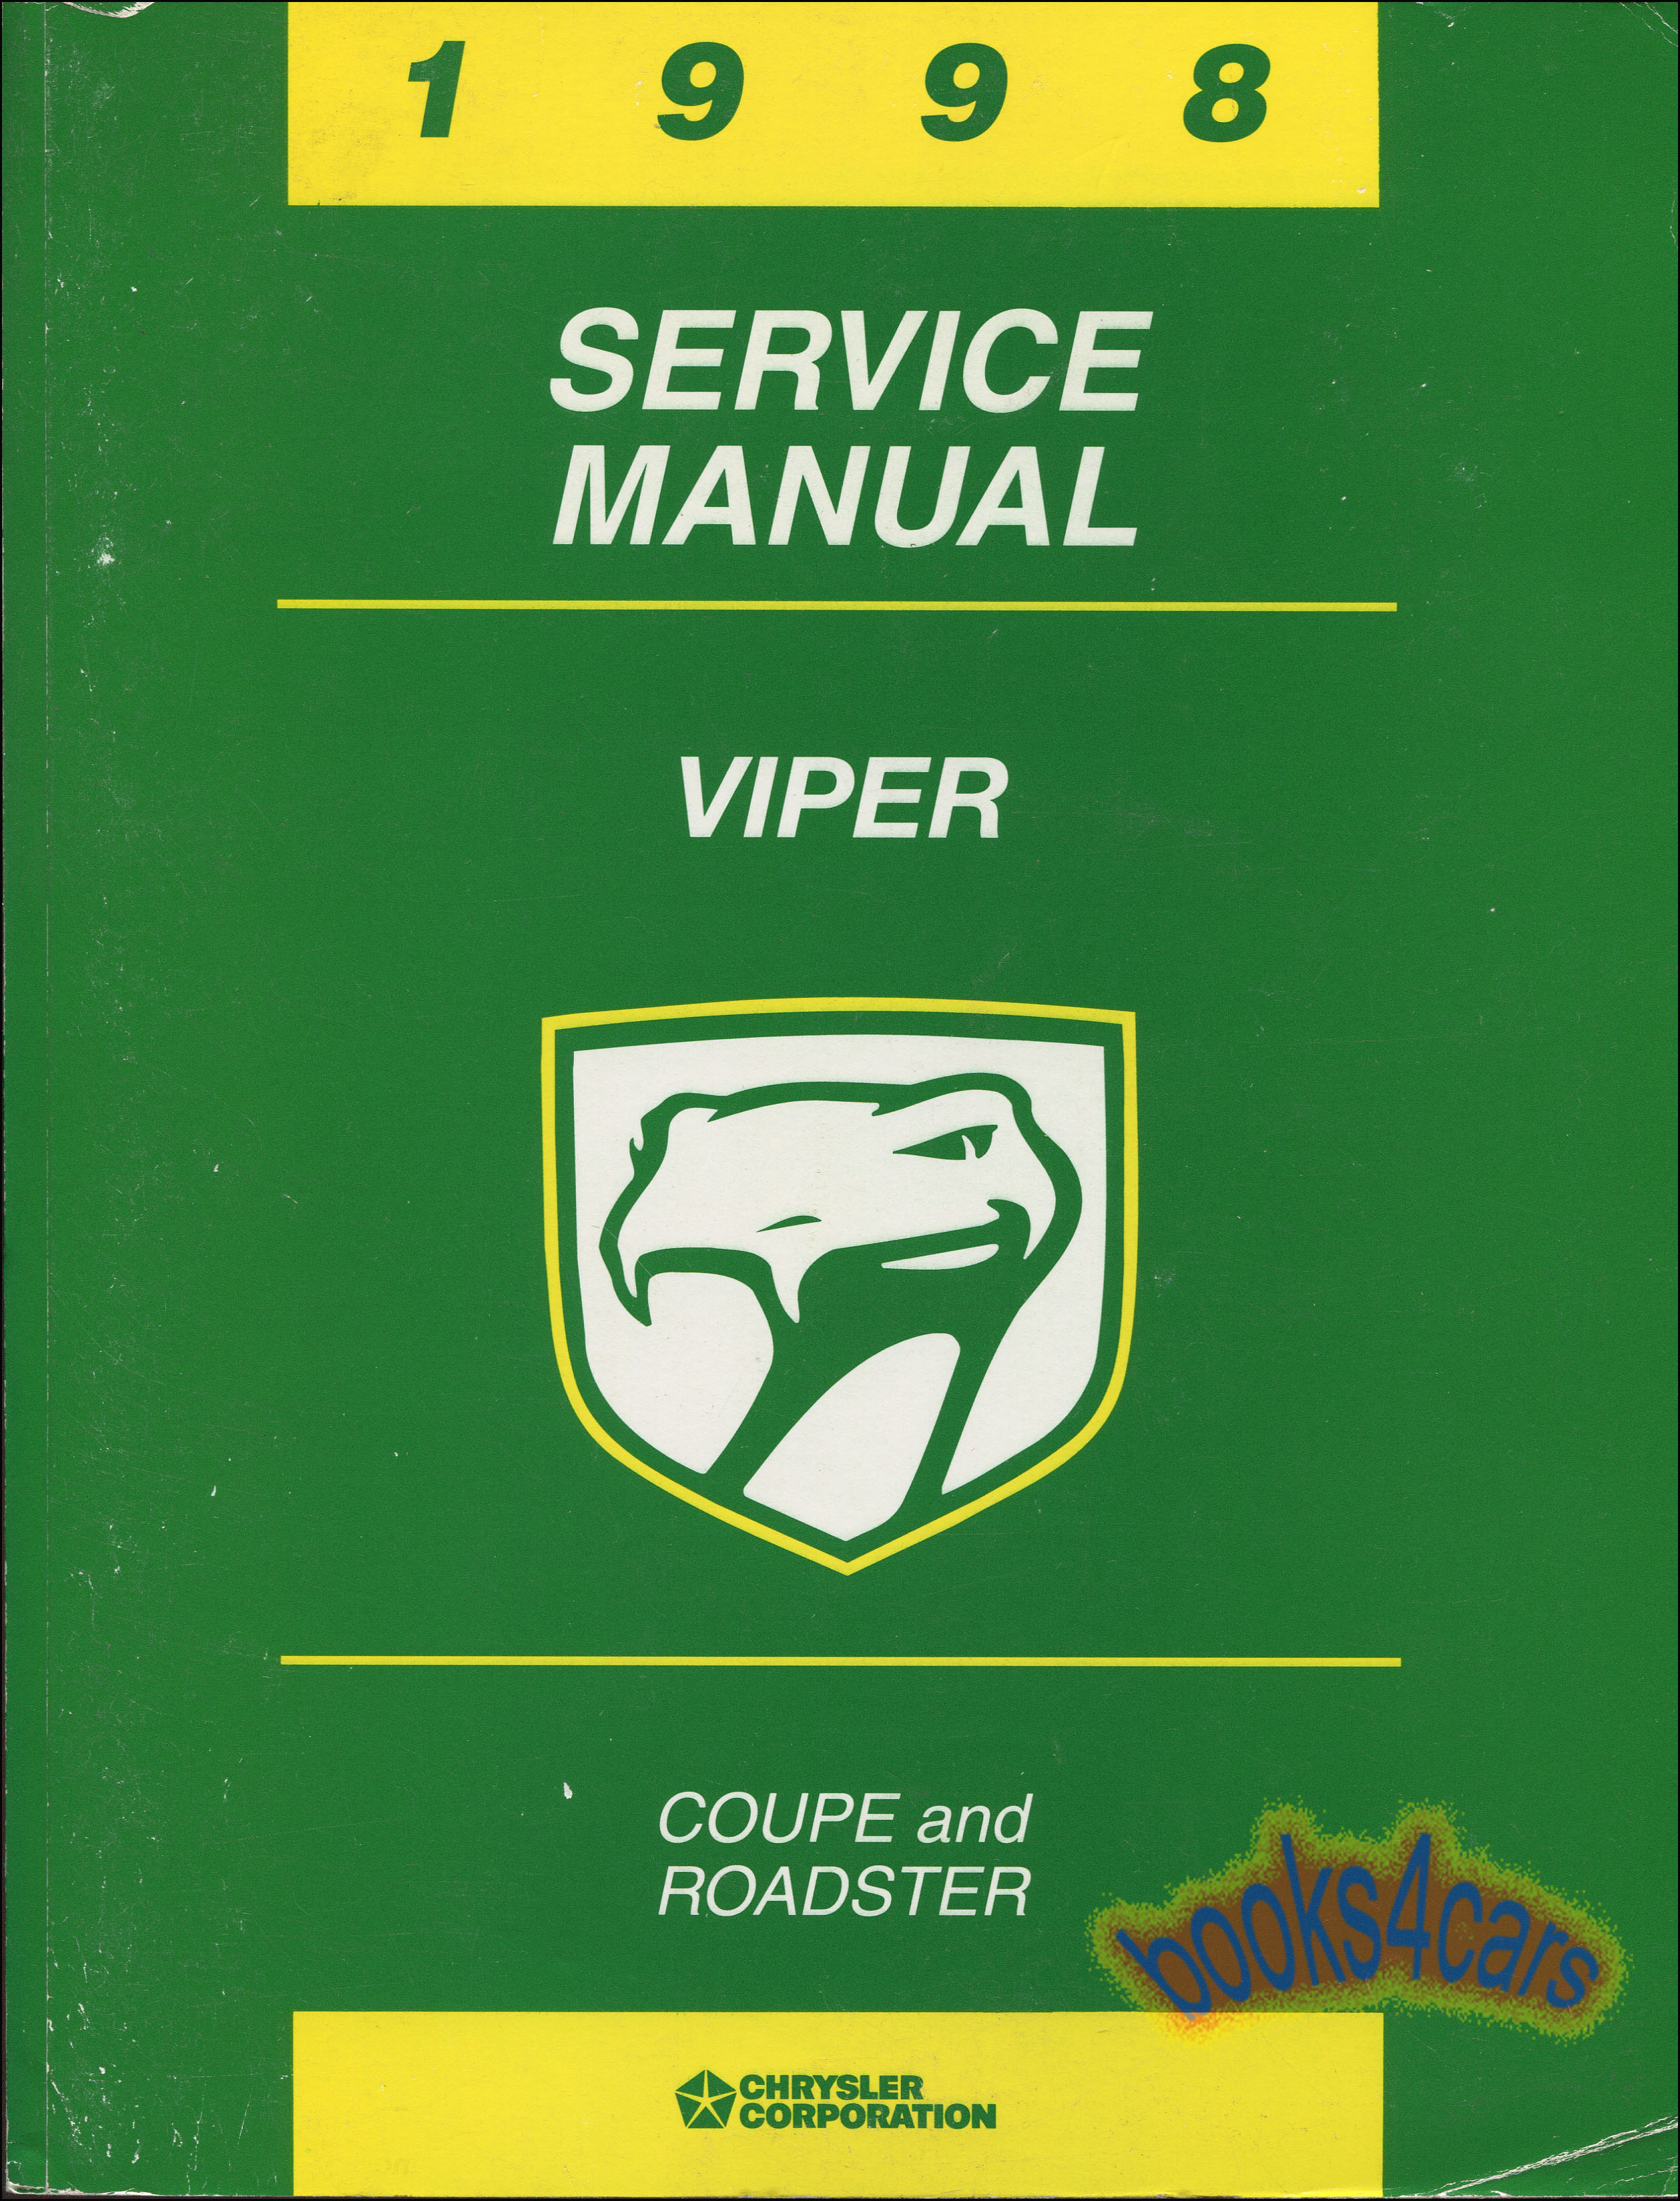 REAL BOOK over 500 page Factory Shop Service Repair Manual for 1998 Dodge  Viper Coupe & Roadster with Service & Repair Procedures for Engine  Transmission ...